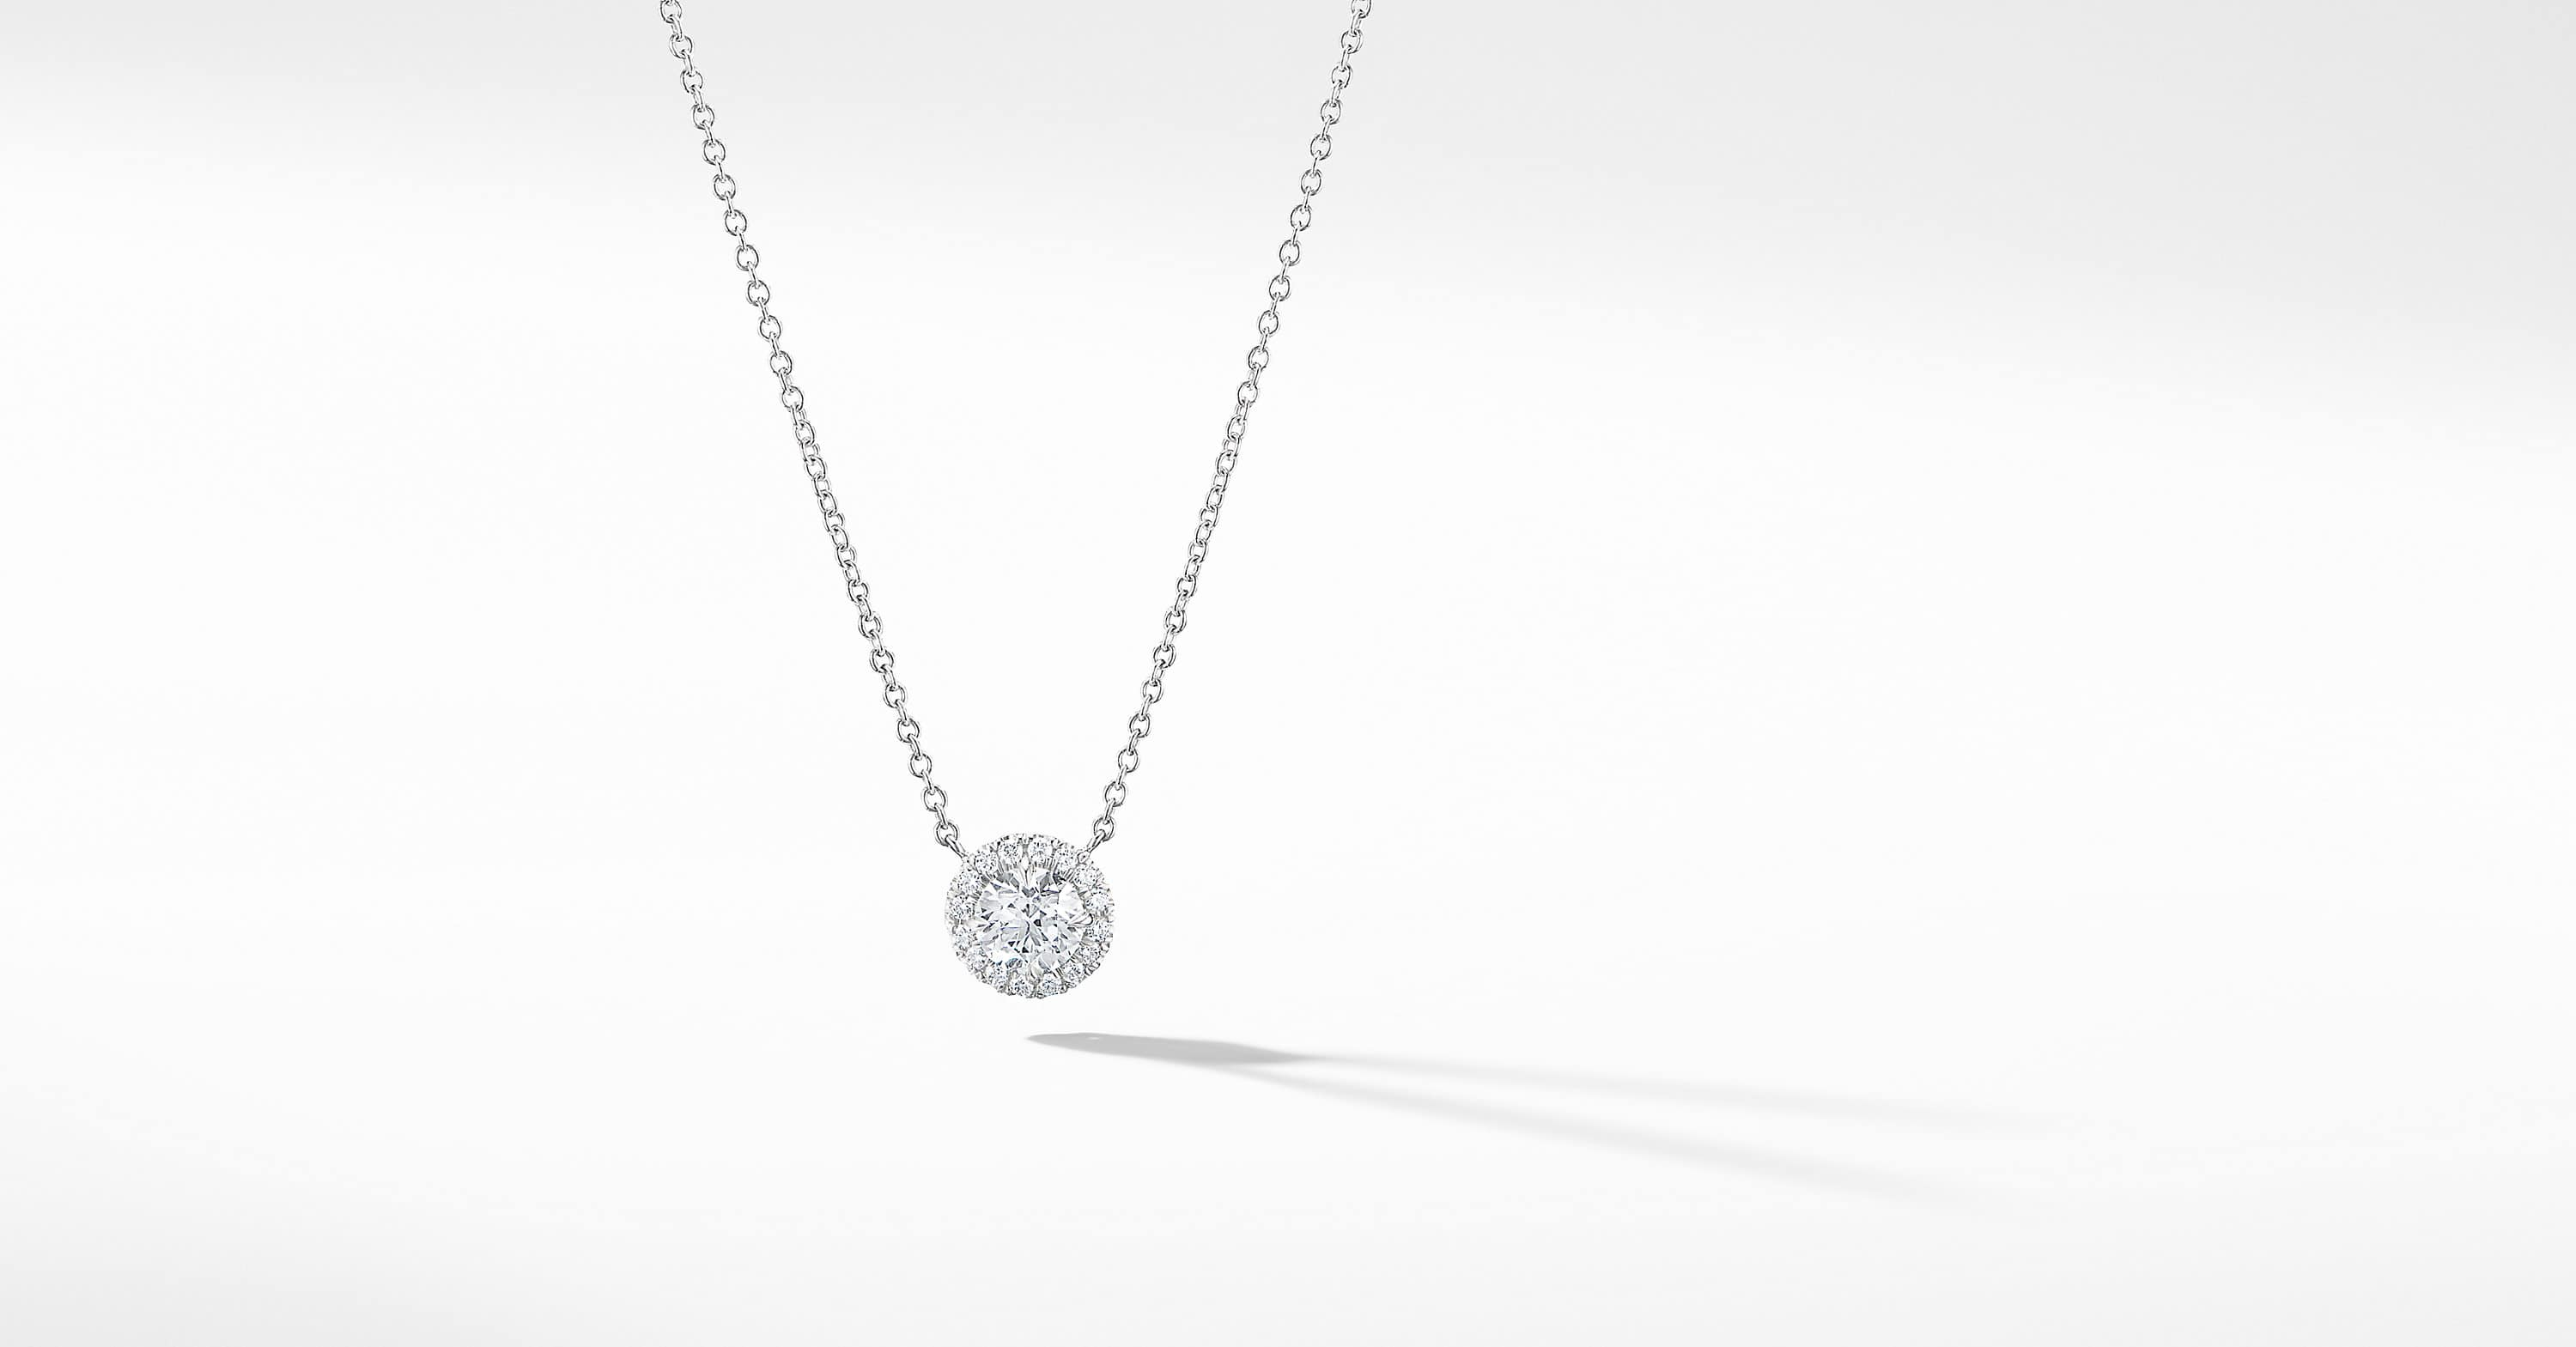 DY Capri Round Pendant Necklace in 18K White Gold with Diamonds